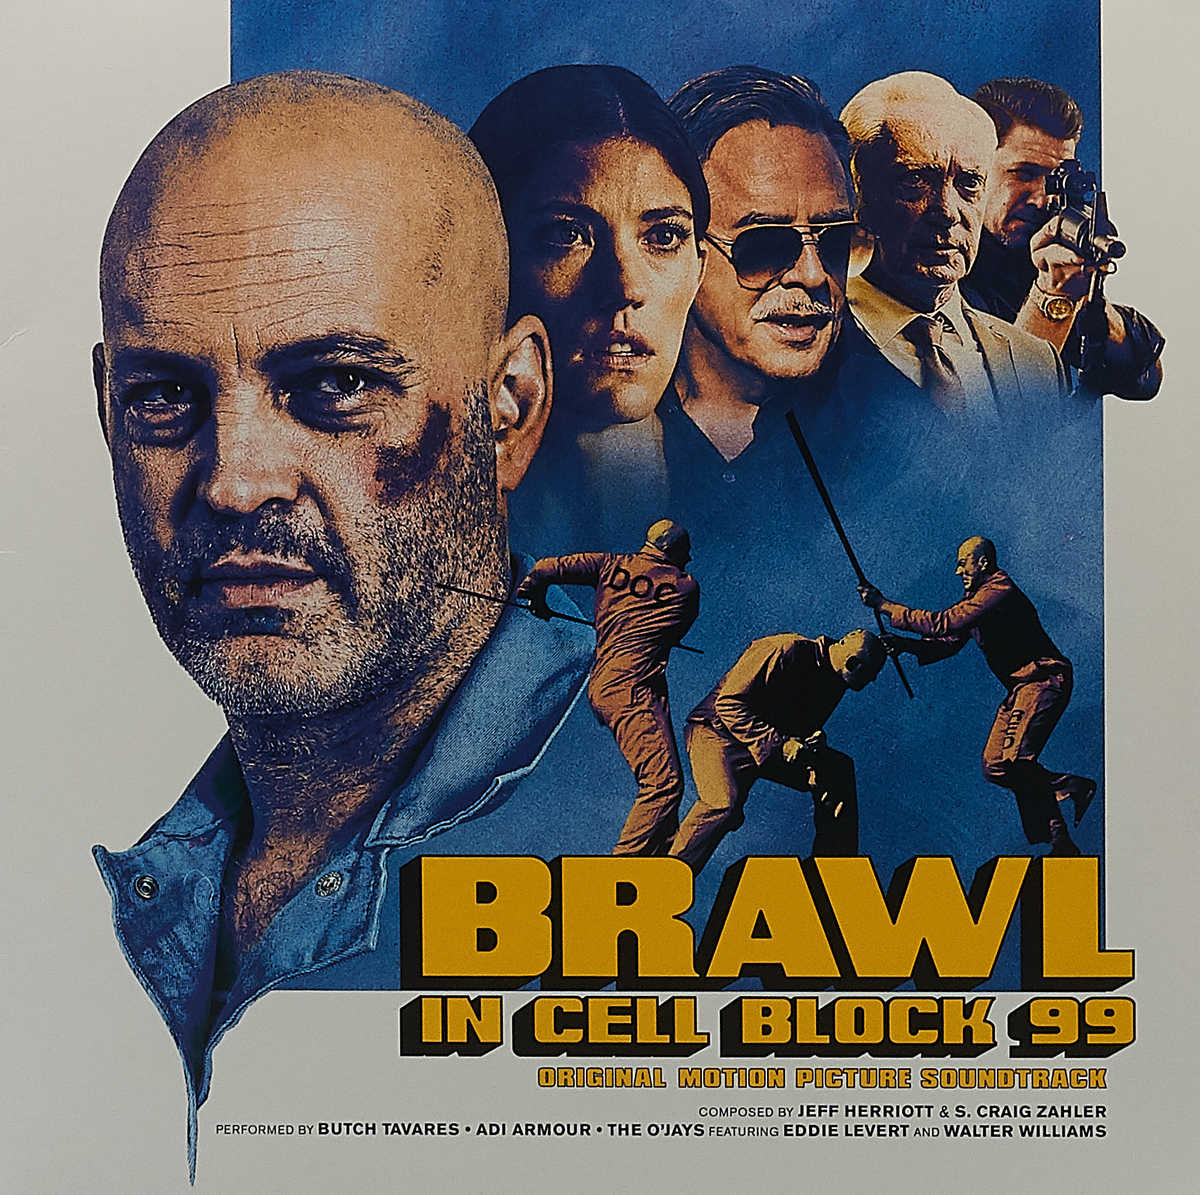 Butch Tavares,Adi Armour,The O'Jays Brawl in Cell Block 99. Original Motion Picture Soundtrack (LP) summer in february original motion picture soundtrack